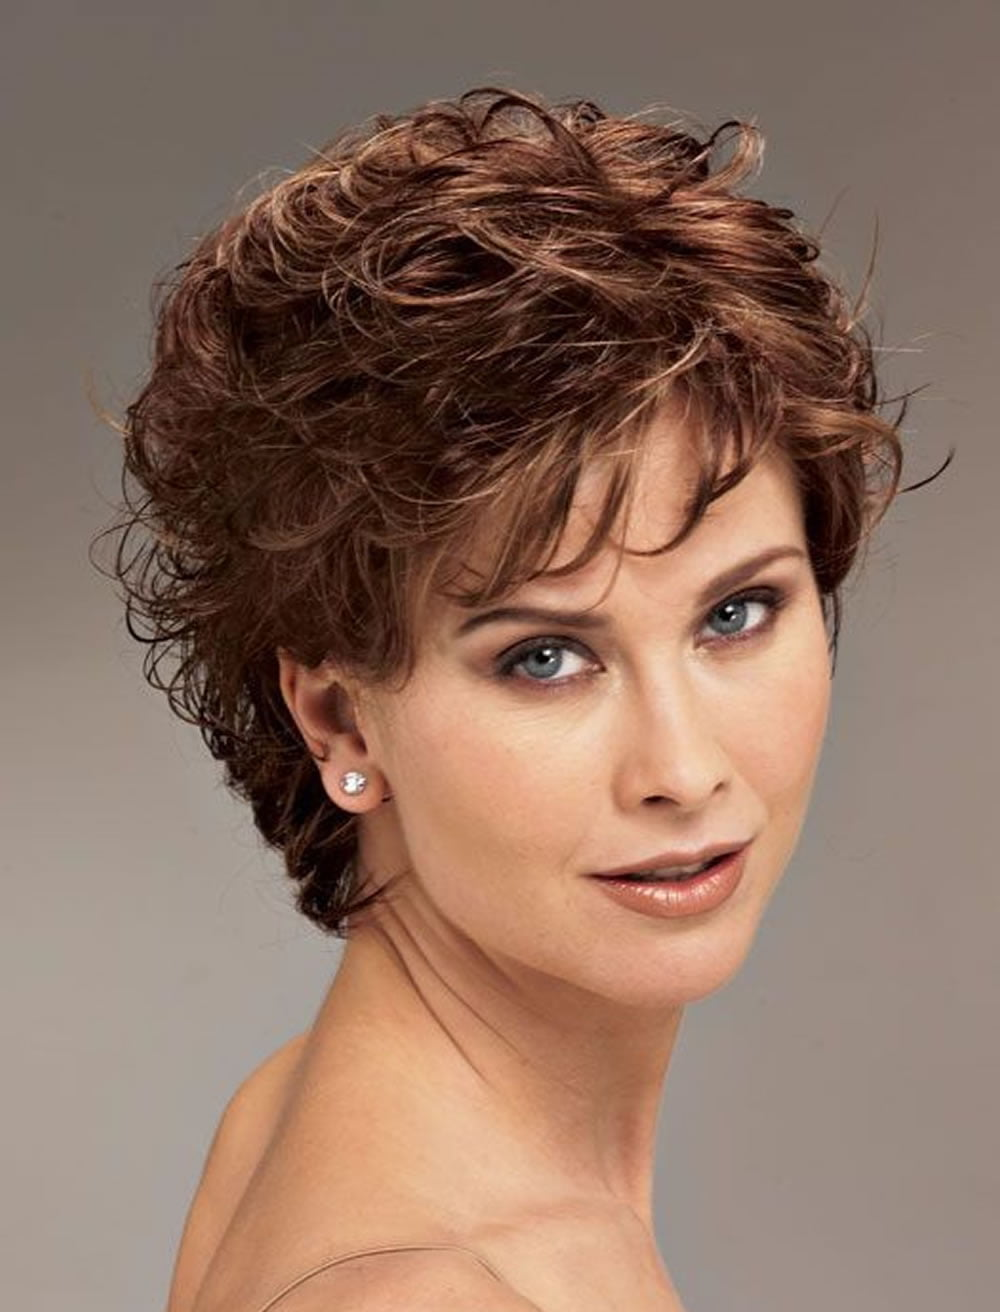 Curly Short Hairstyles for Older Women Over 50   Best ...